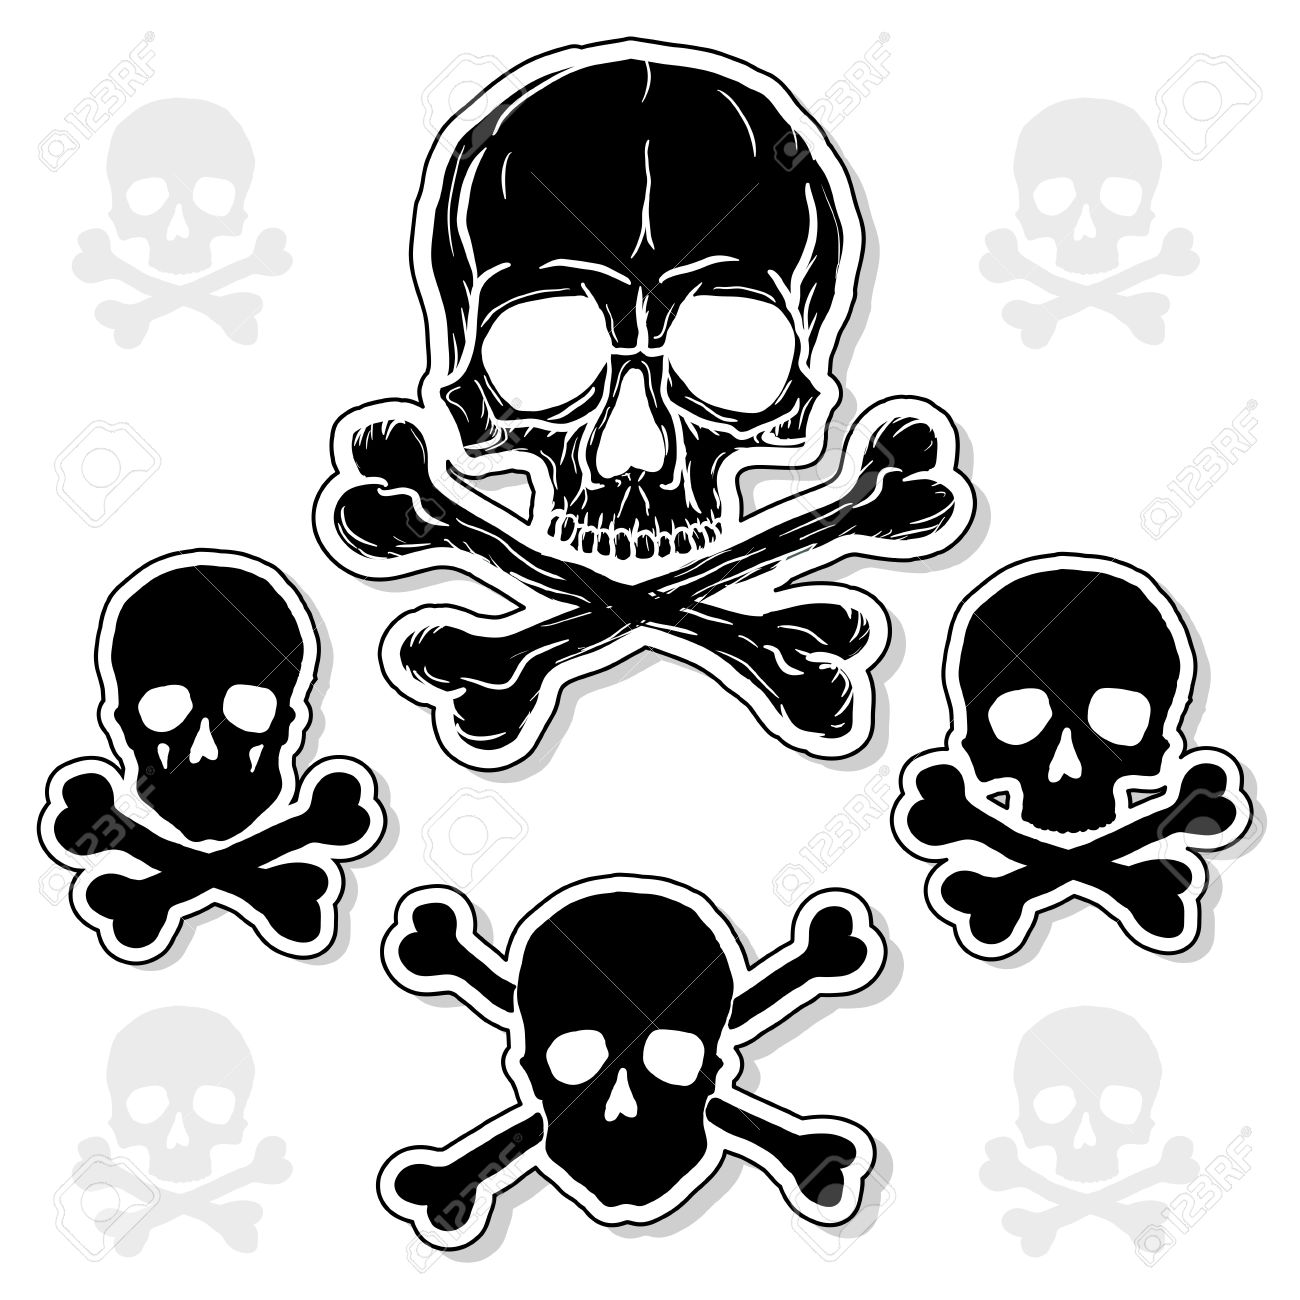 8,341 Skull Crossbones Stock Vector Illustration And Royalty Free ...